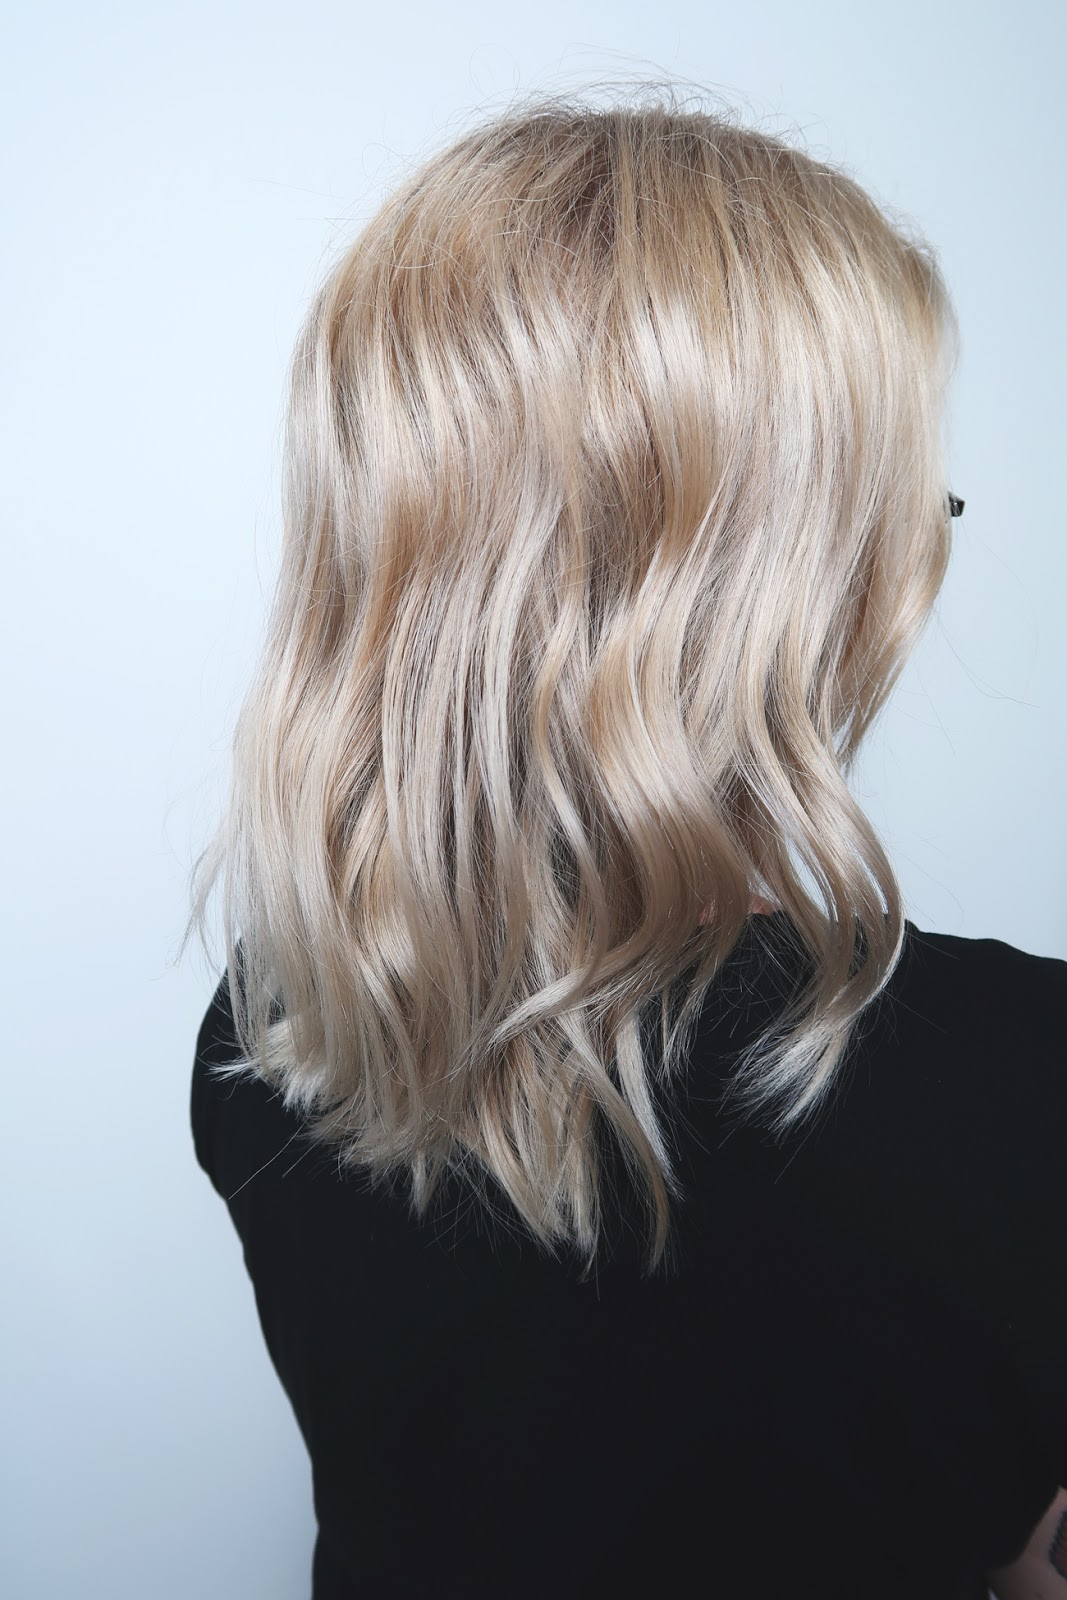 natural blonde hair hairstylist johannes yrjö kampaamo pesula